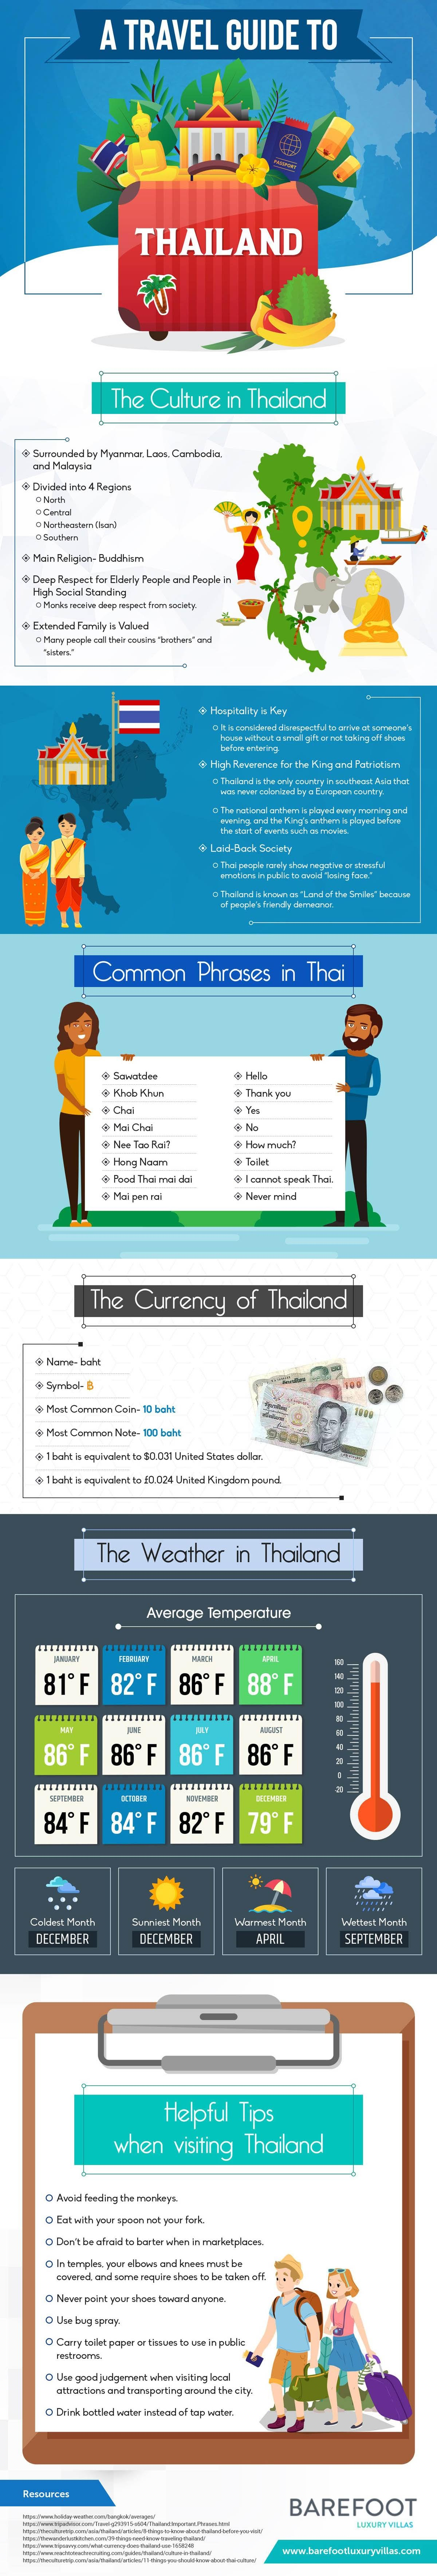 A Travel Guide to Thailand #infographic